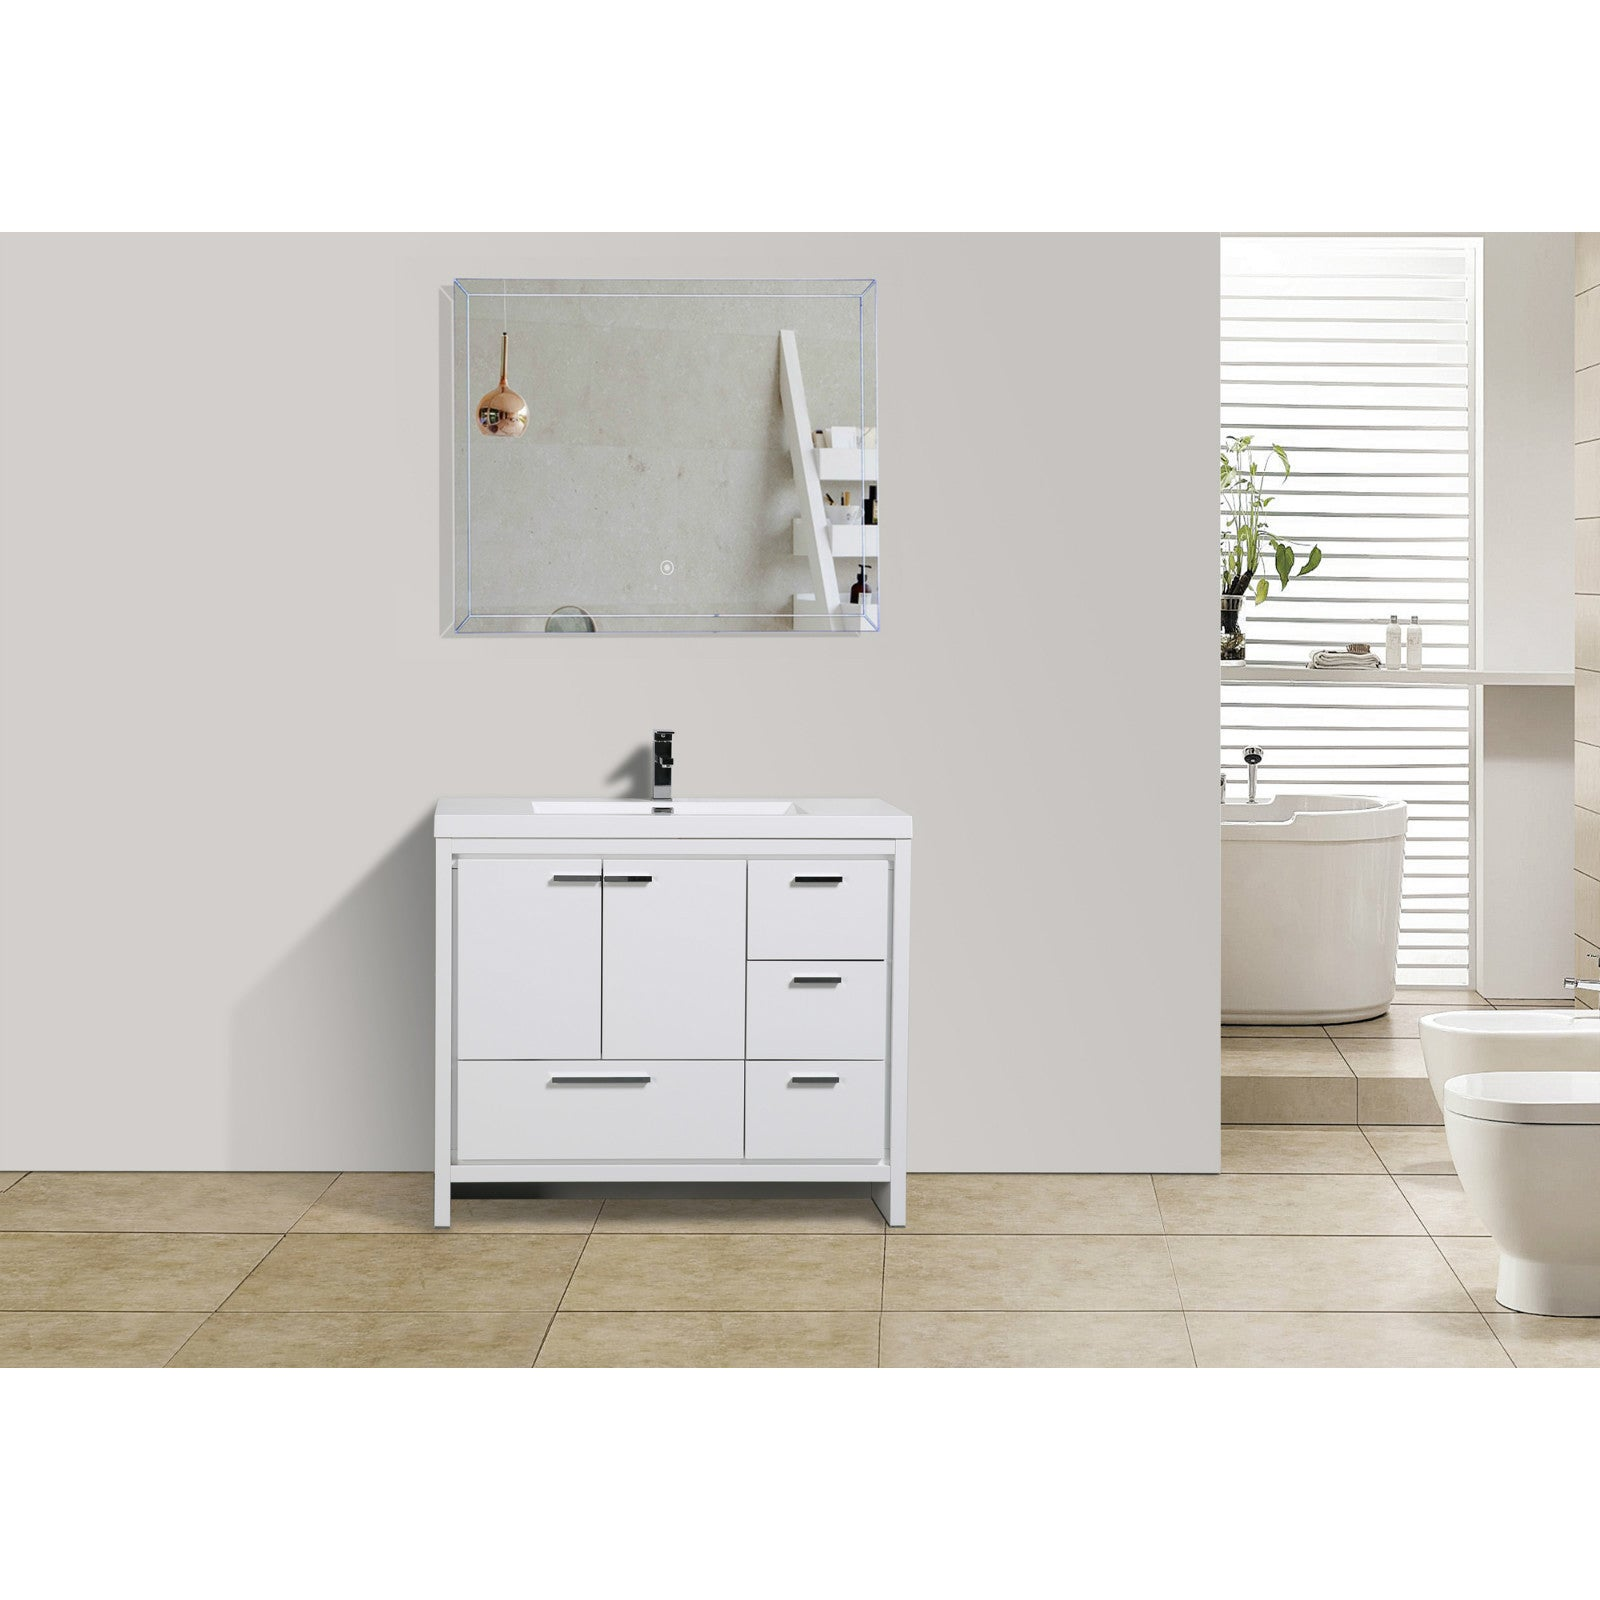 Moreno MOD 42 Inch Bathroom Vanity With Drawers (Option: High Gloss White)